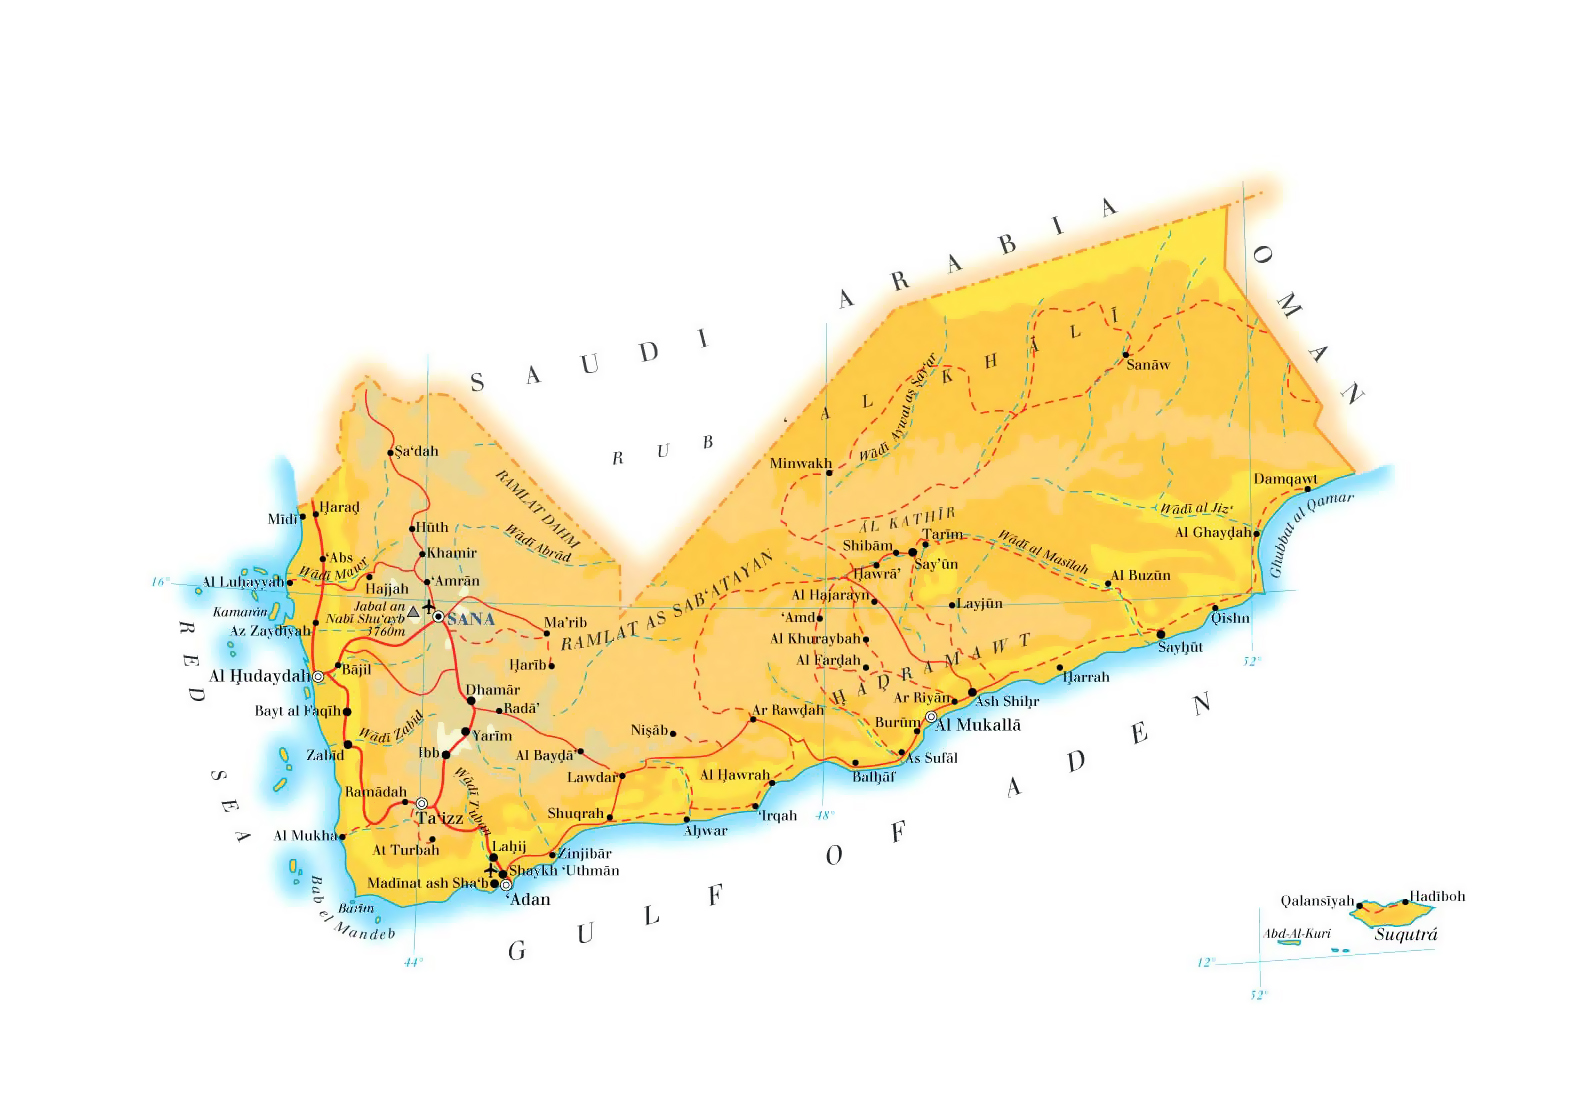 Large elevation map of Yemen with roads cities and airports